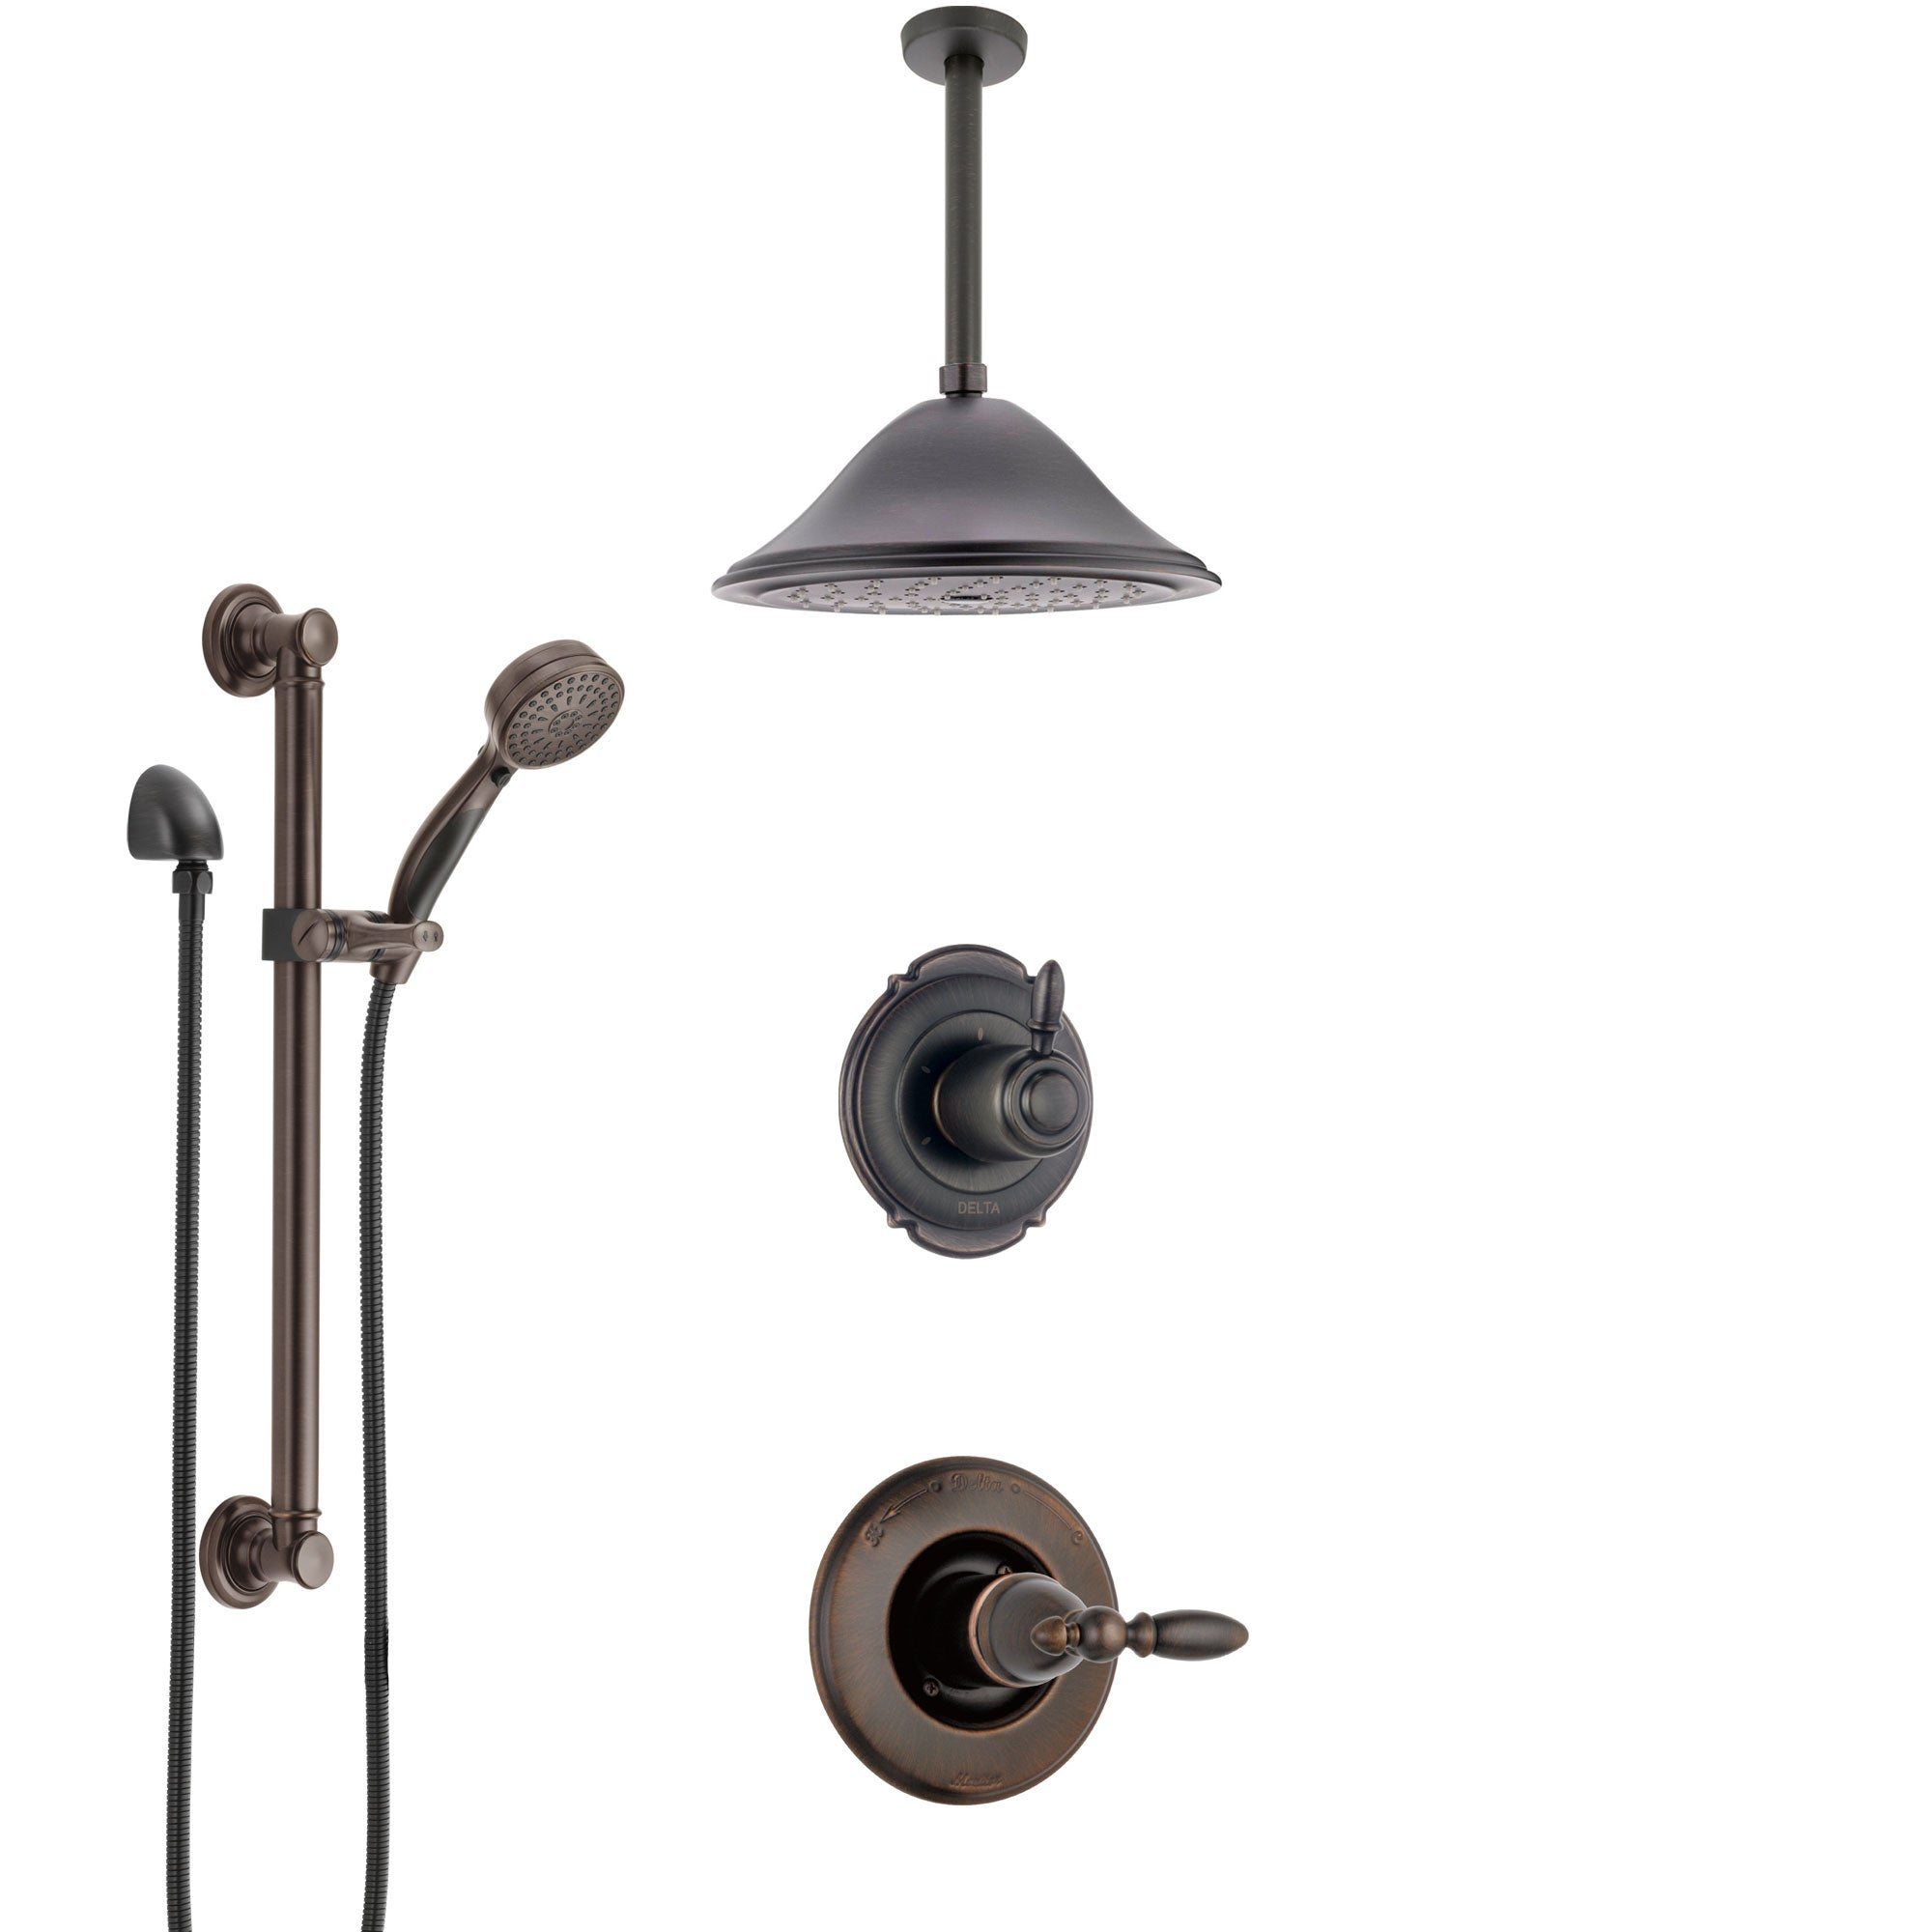 Delta Victorian Venetian Bronze Shower System with Control Handle, Diverter, Ceiling Mount Showerhead, and Hand Shower with Grab Bar SS1455RB4